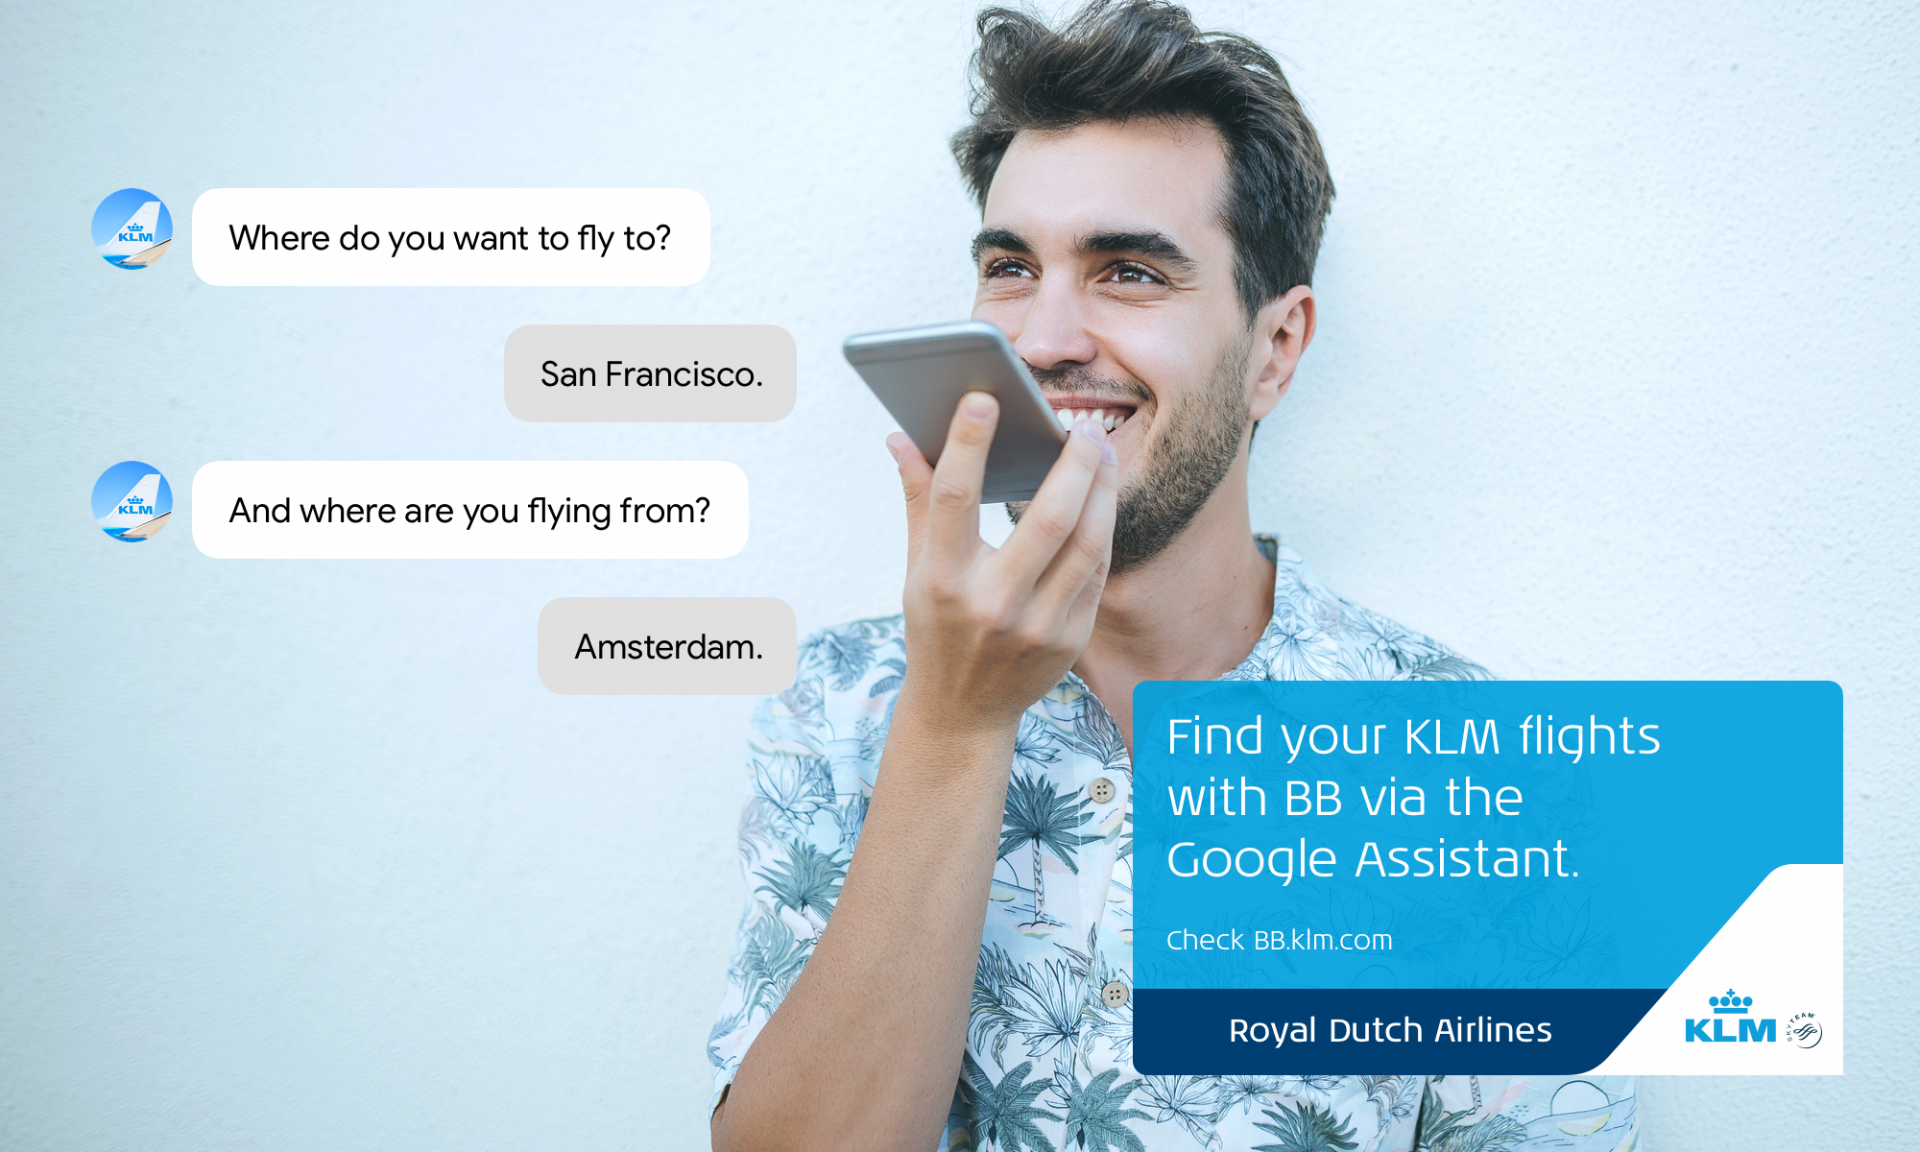 KLM launches Dutch service on the Google Assistant